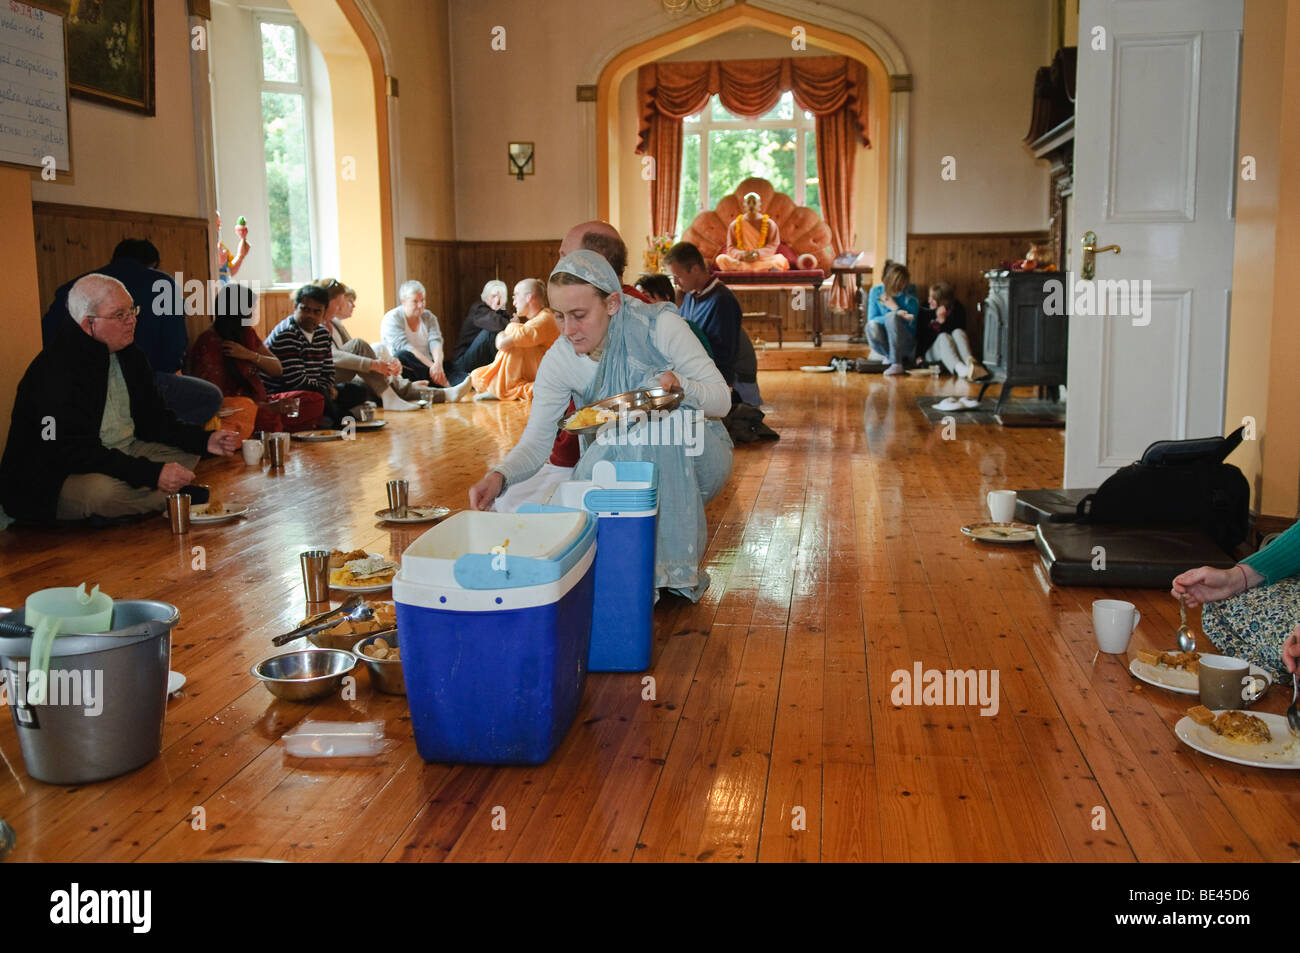 Disciples and visitors eating a vegetarian feast at a Hare Krishna temple room Stock Photo